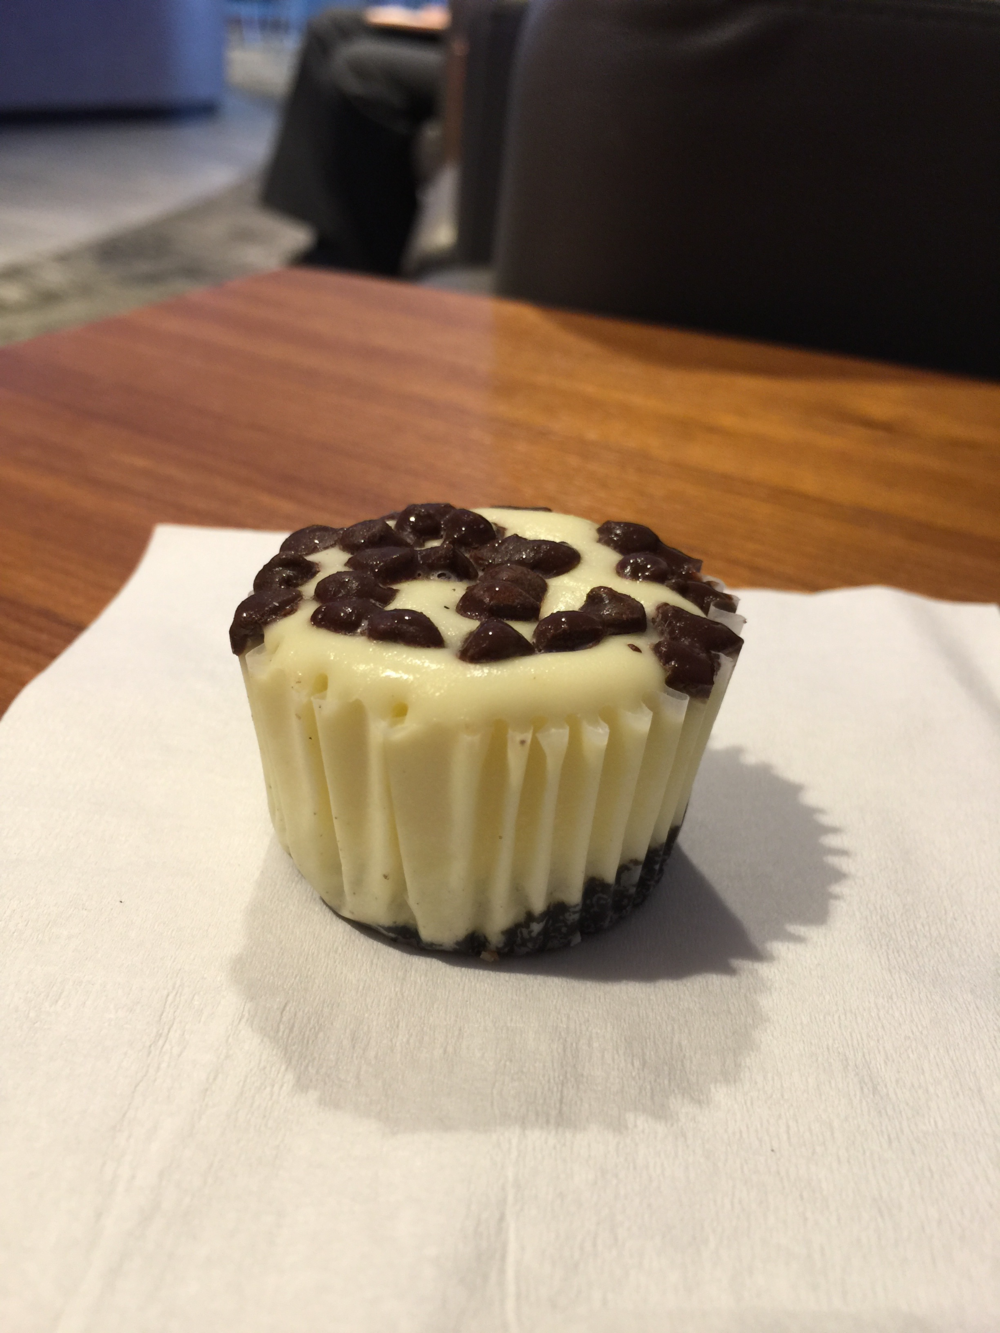 An employee offered mini cheesecake bites (click to enlarge)